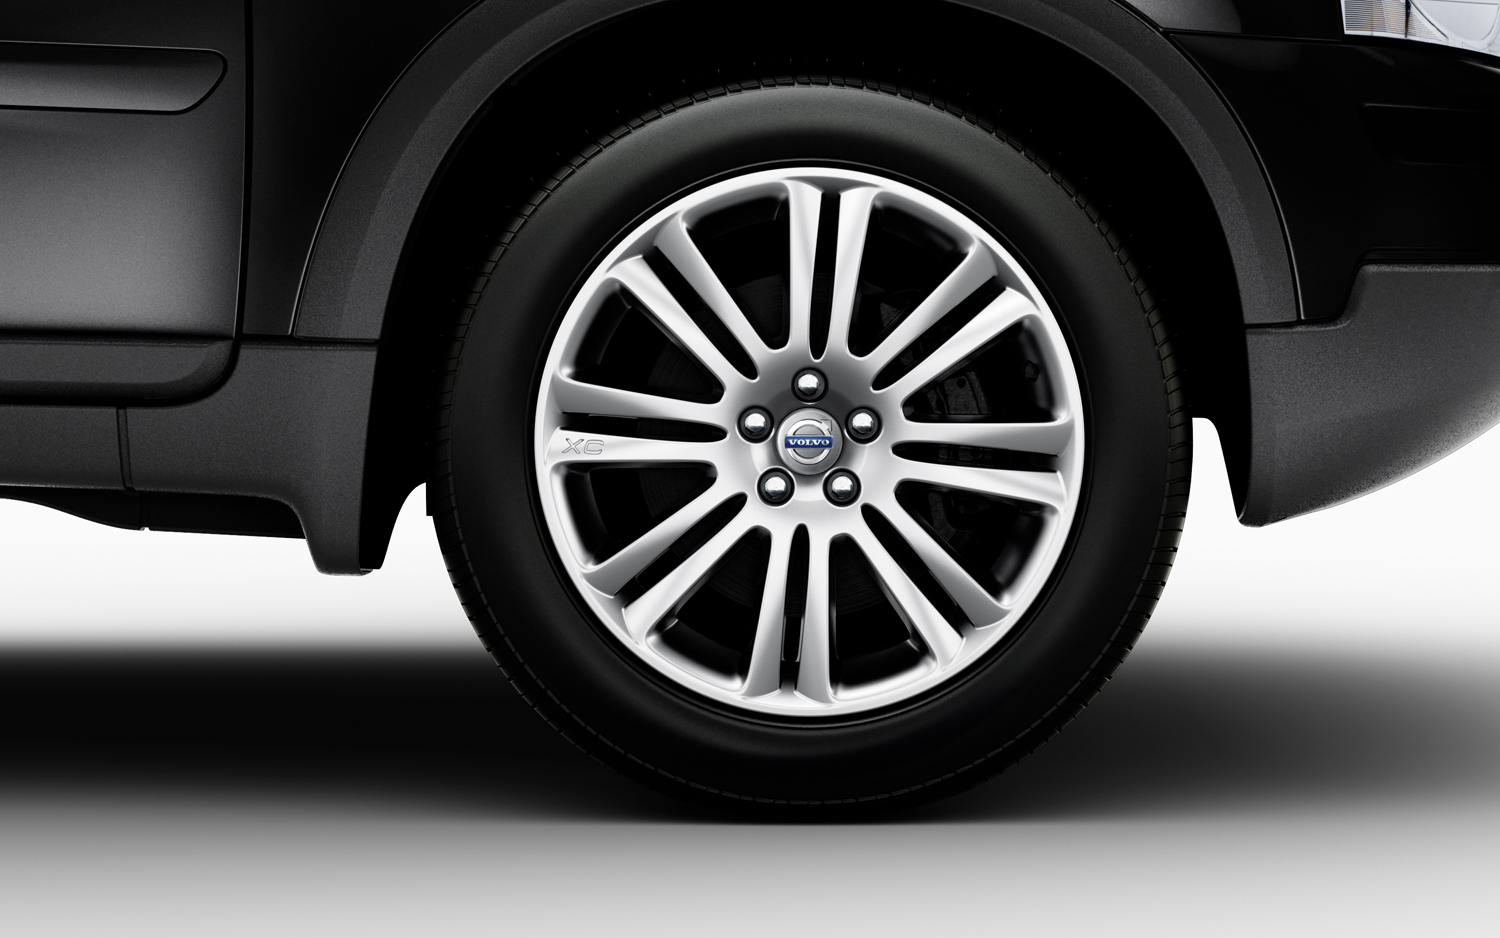 Volvo XC wheels #4